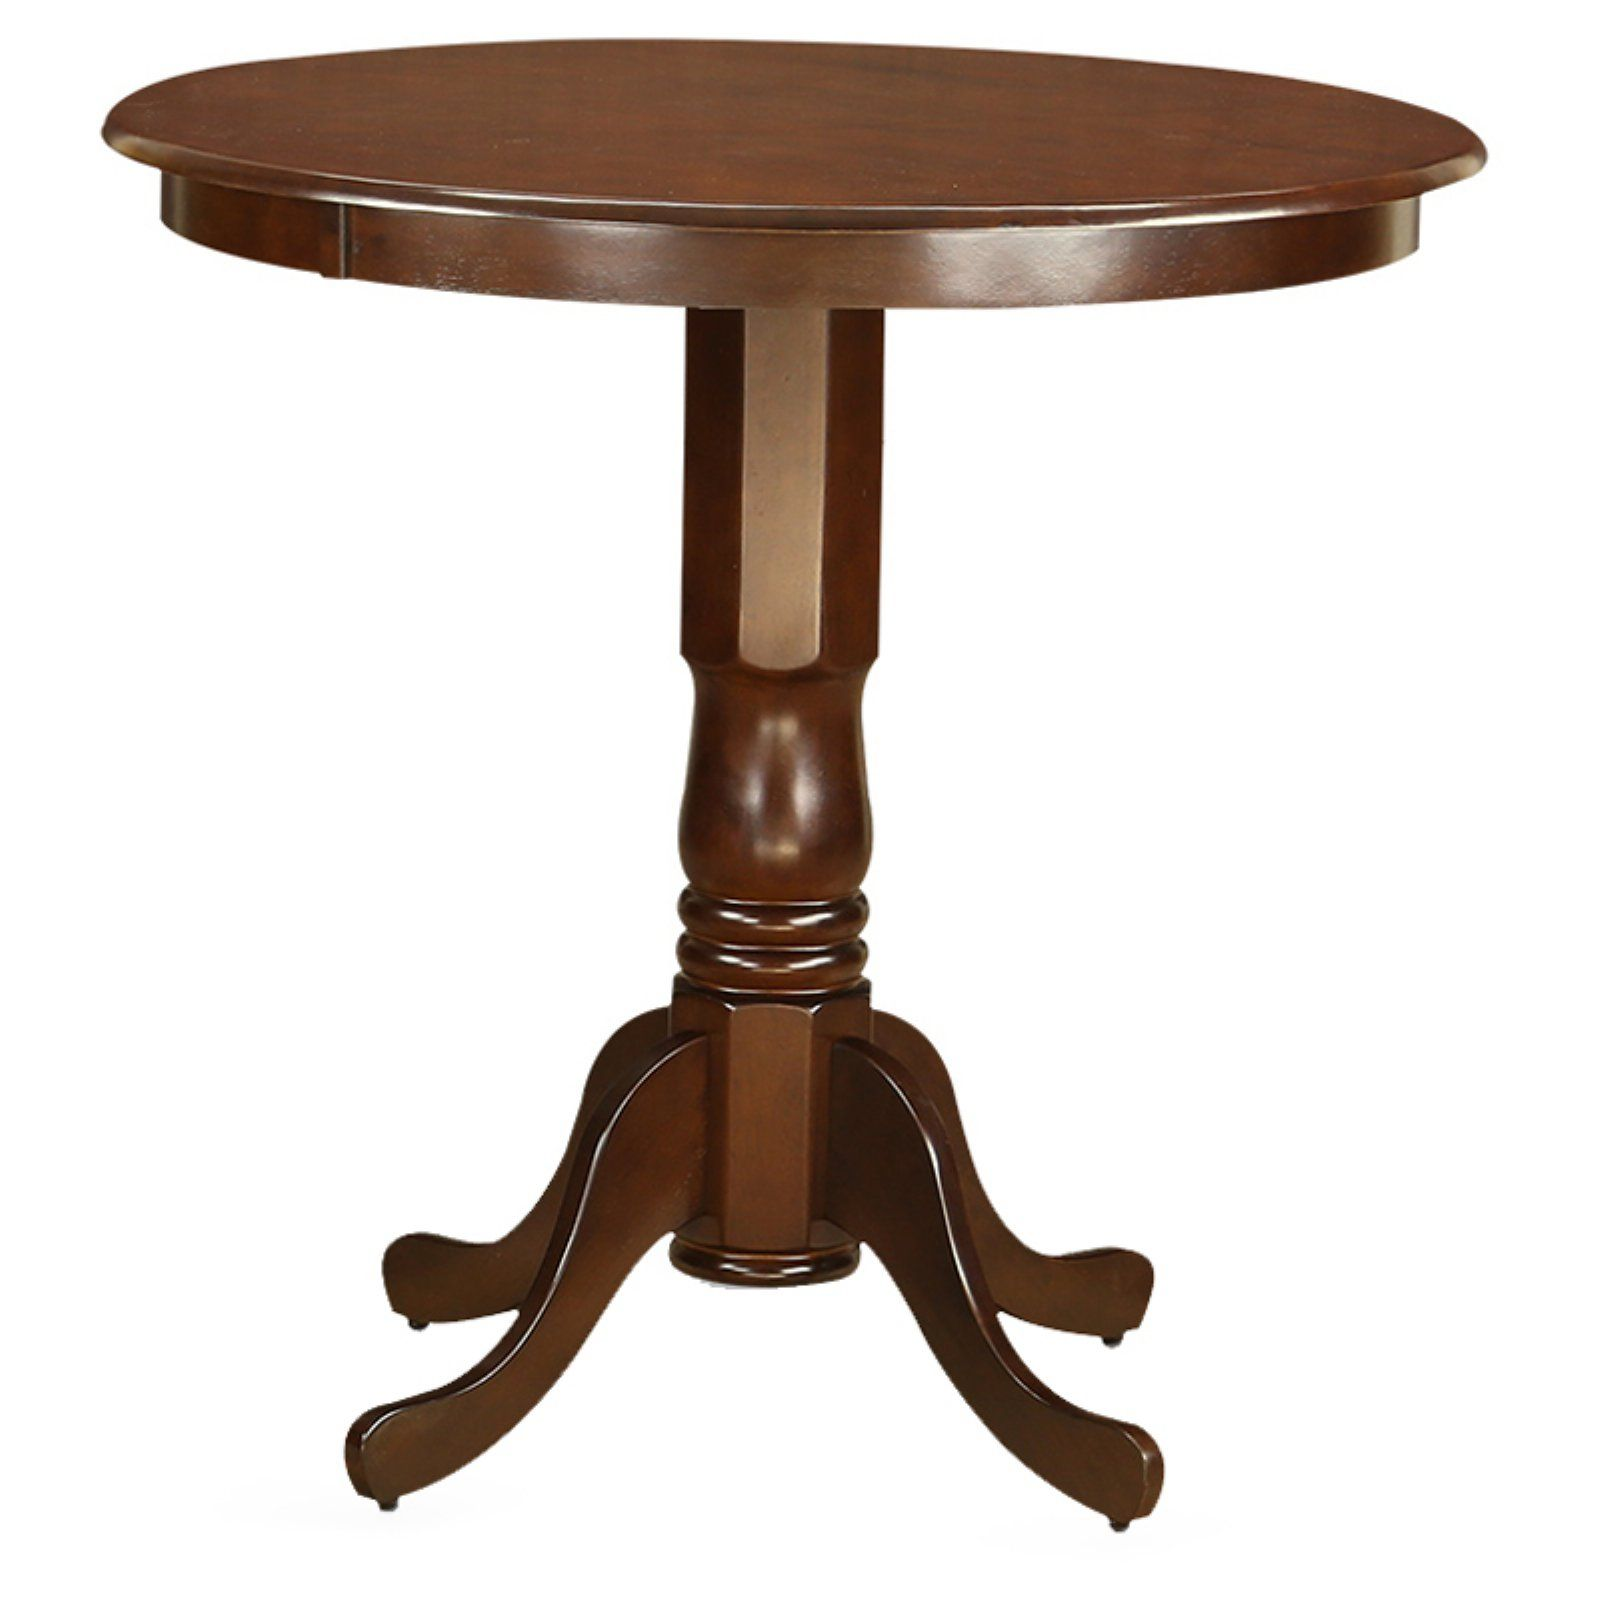 50 36 Inch Round Pedestal Table Modern Italian Furniture Check